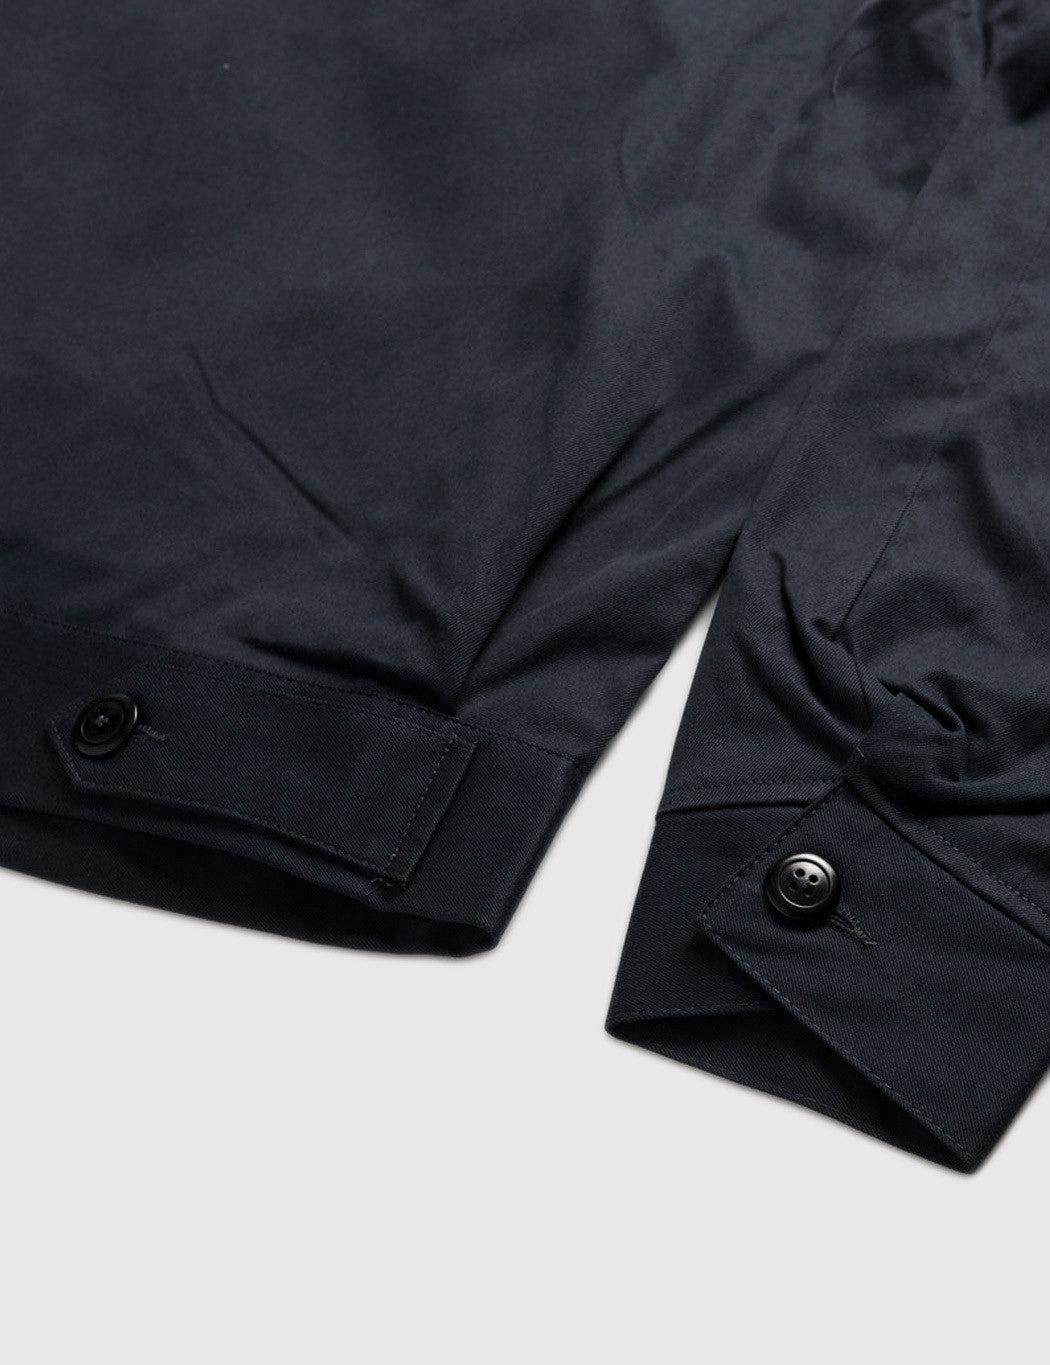 Deus Ex Machina Workwear Jacket - Black